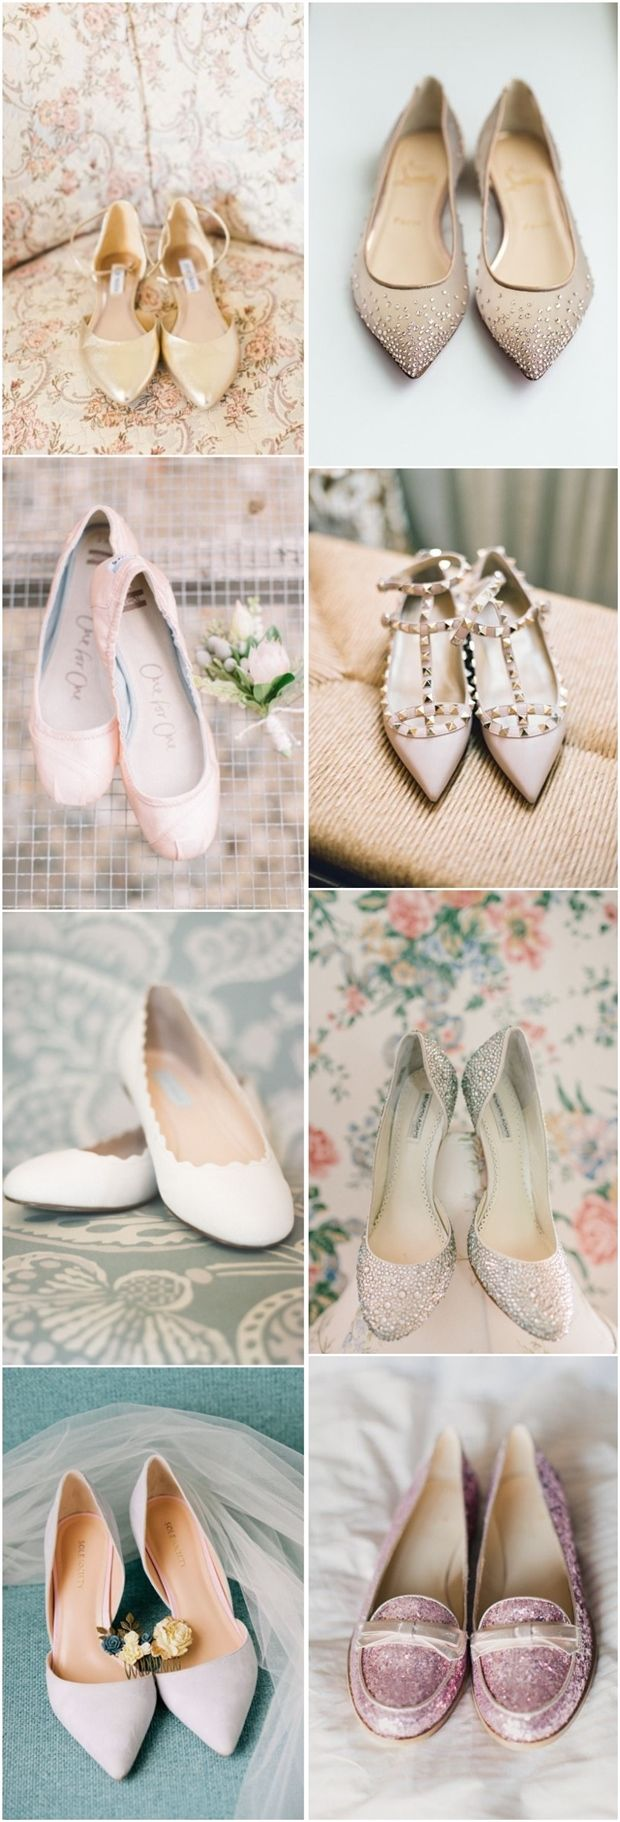 25 Comfortable Wedding Flats for Brides | http://www.deerpearlflowers.com/25-comfortable-wedding-flats-for-brides/ ++ CustomMade ++